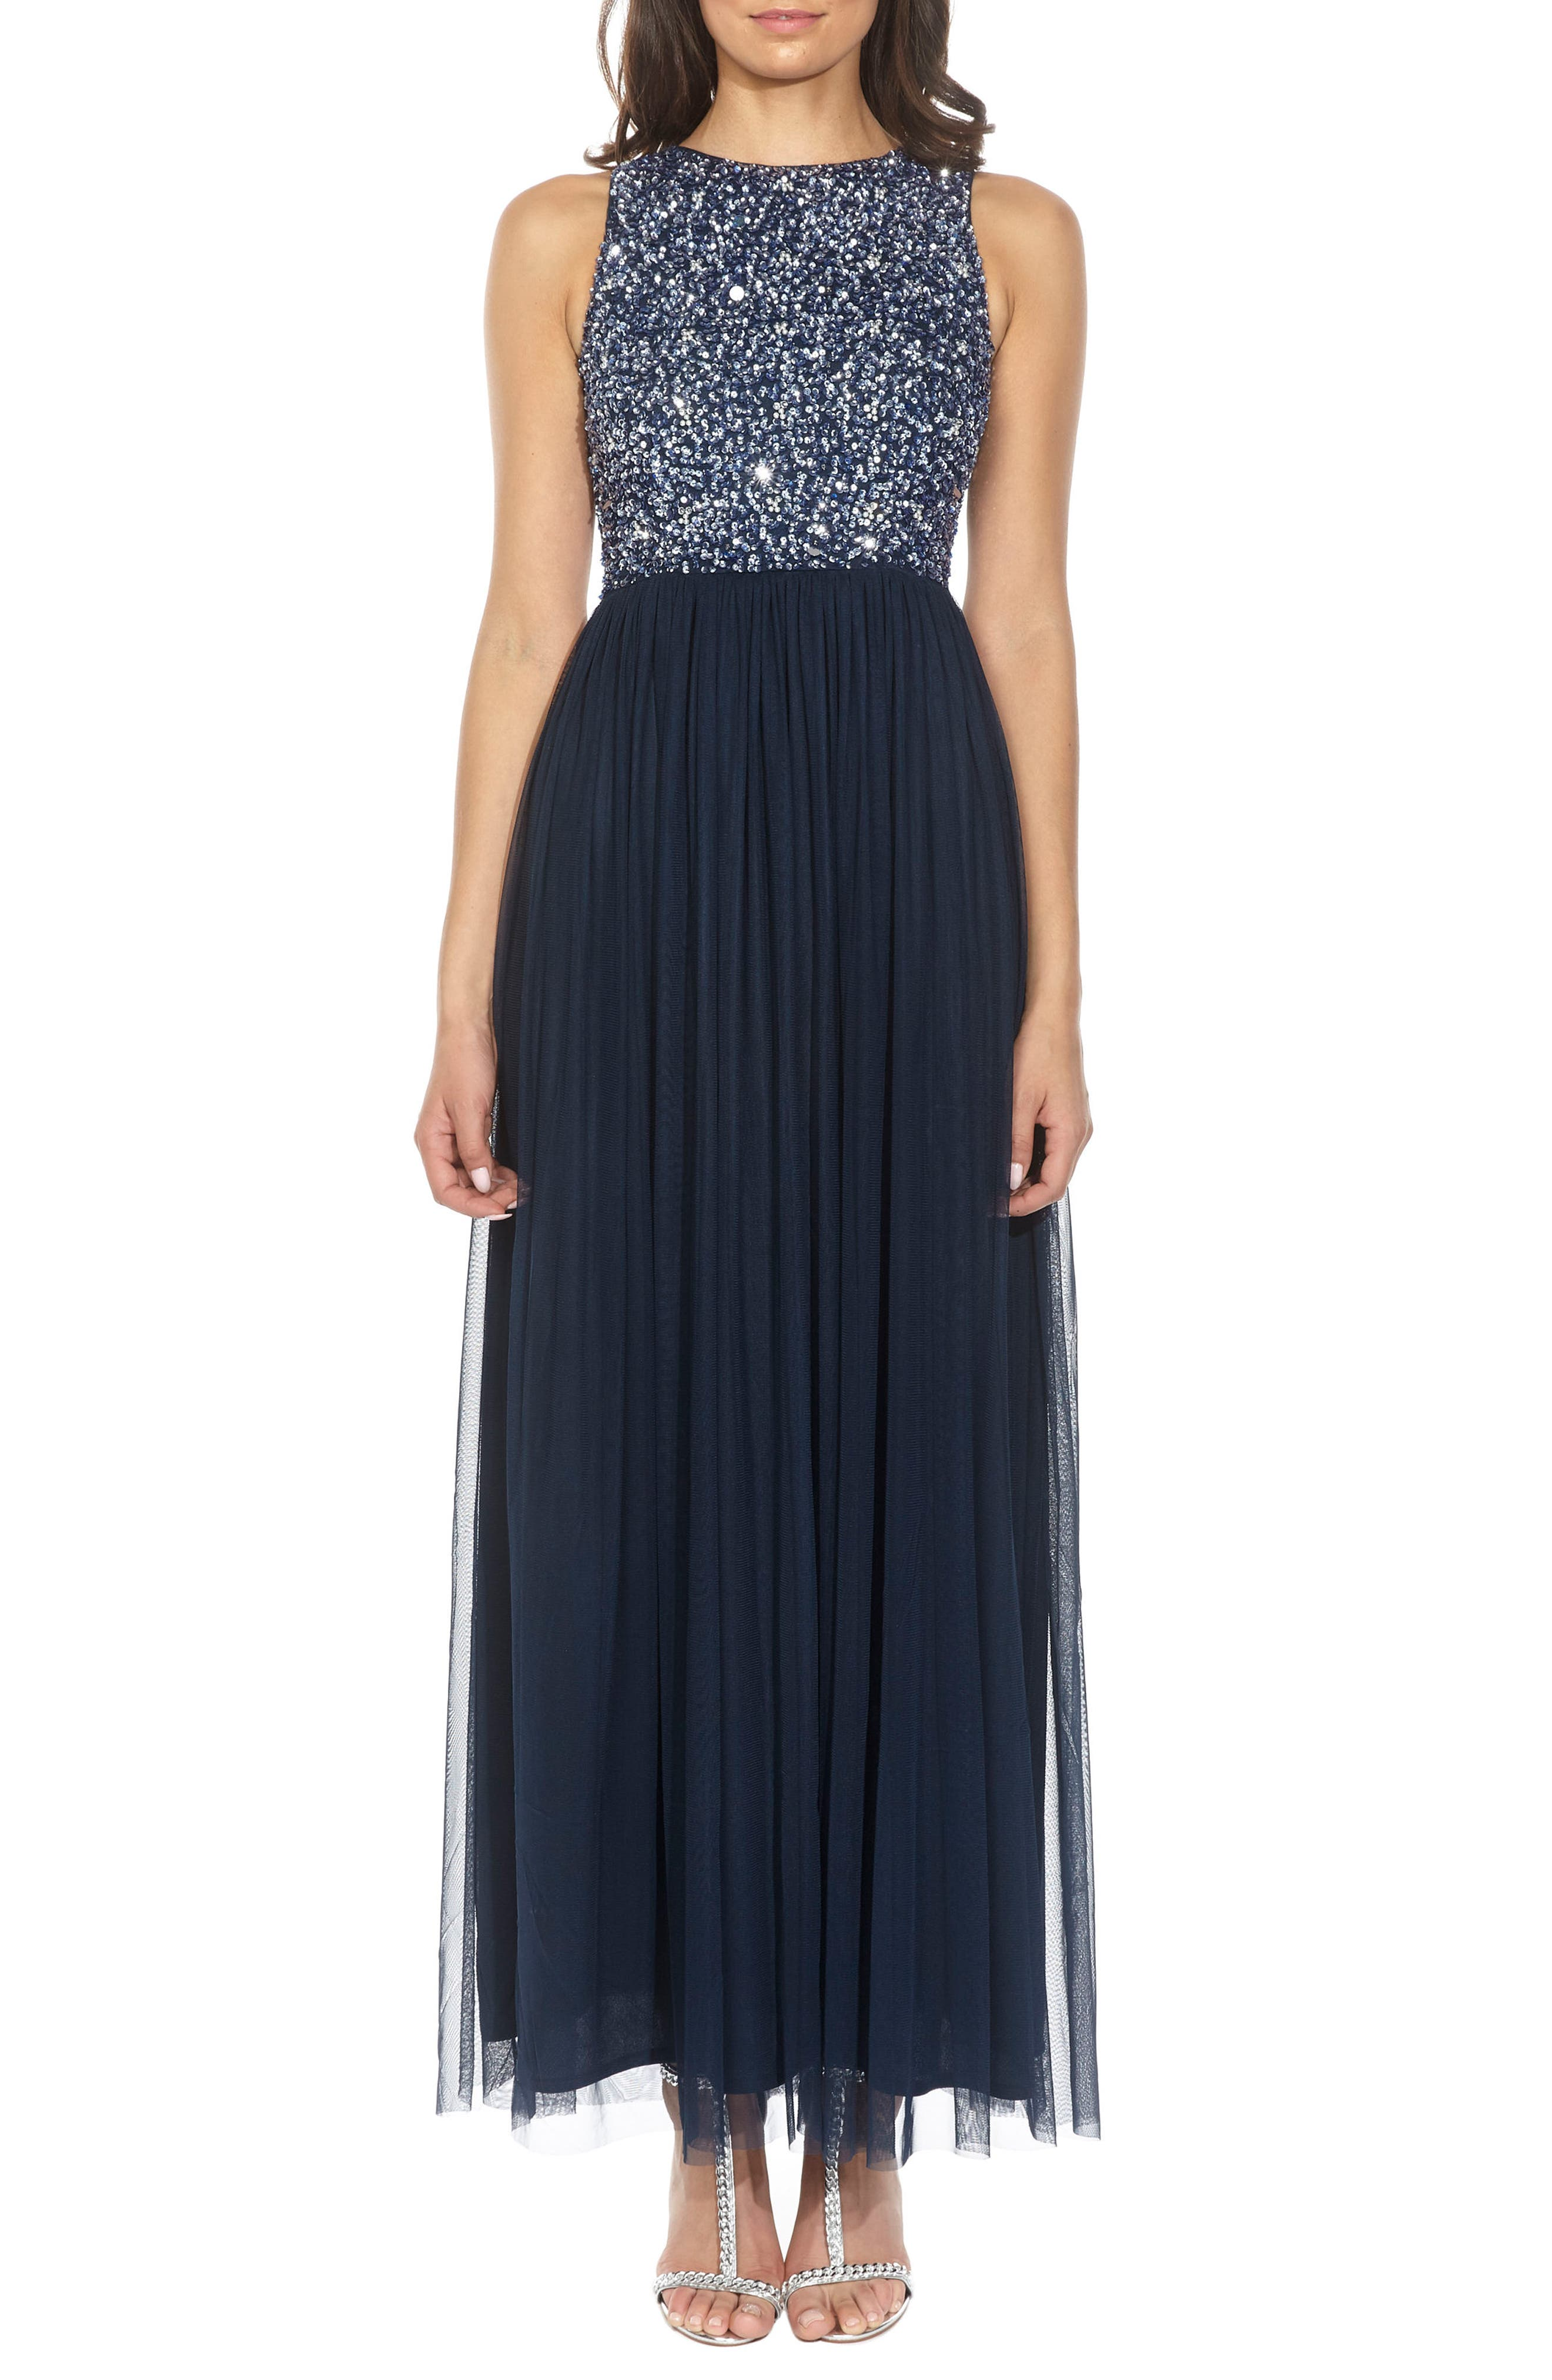 Lace & Beads Picasso Embellished Bodice Evening Dress, Blue